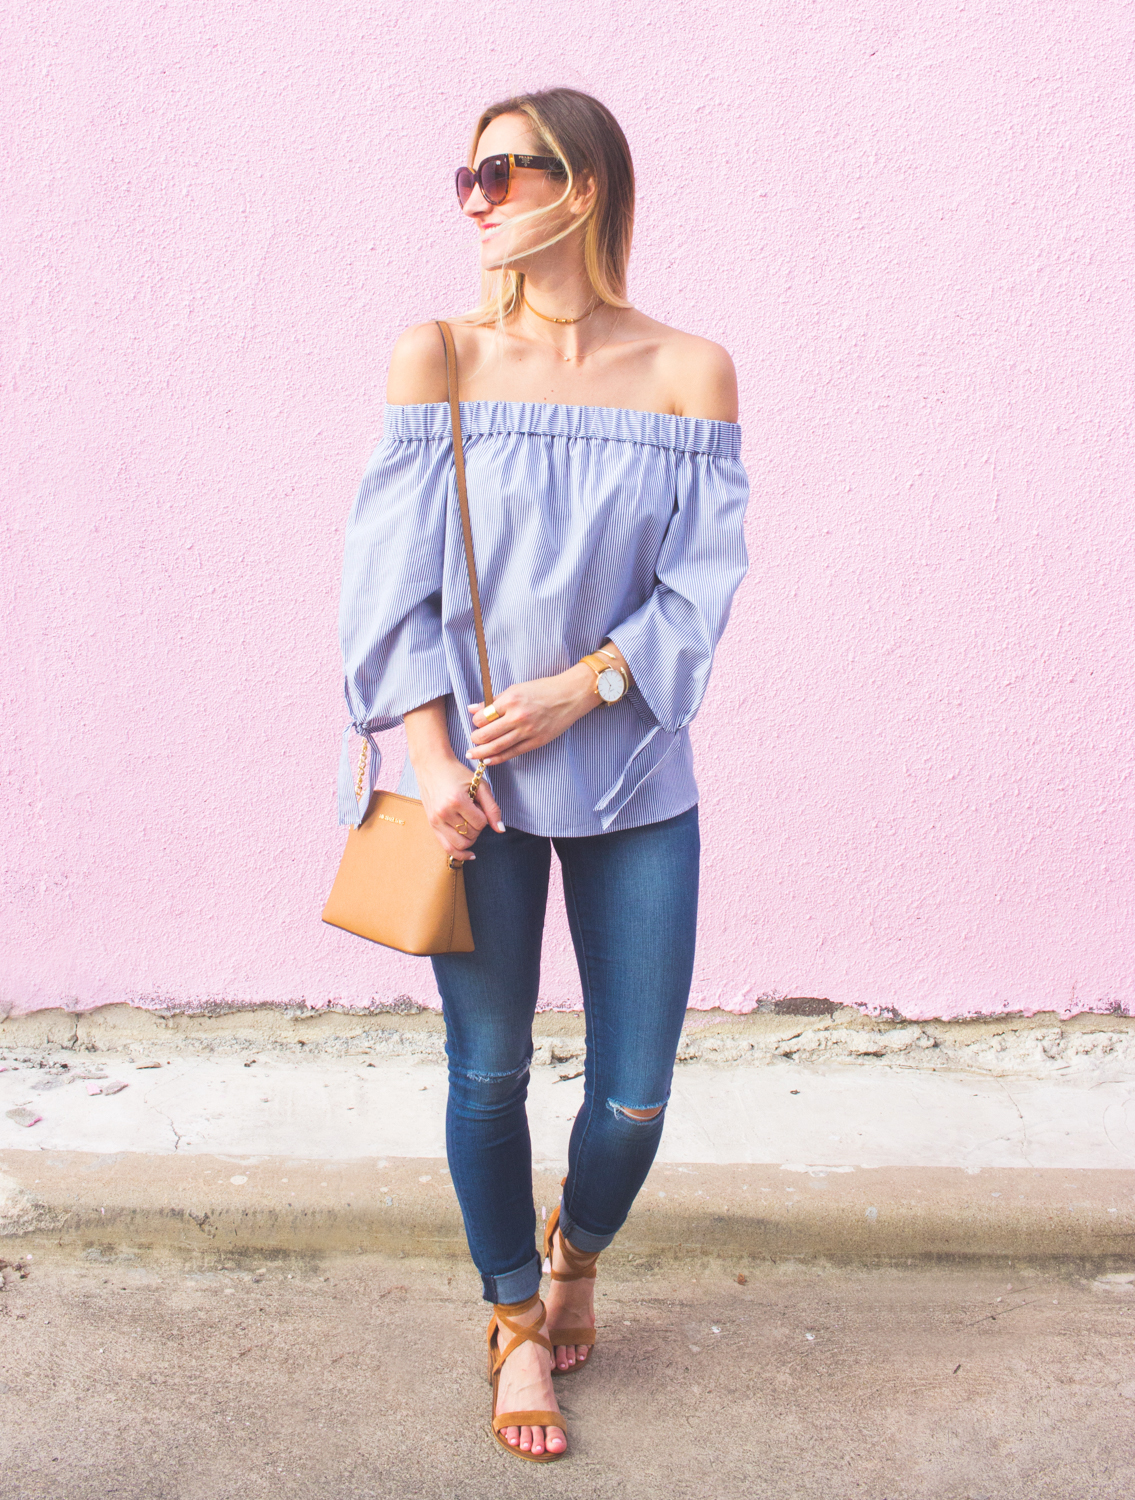 livvyland-blog-olivia-watson-austin-texas-articles-of-society-distressed-skinny-jeans-topshop-off-shoulder-tie-sleeves-striped-top-fashion-blogger-outfit-5